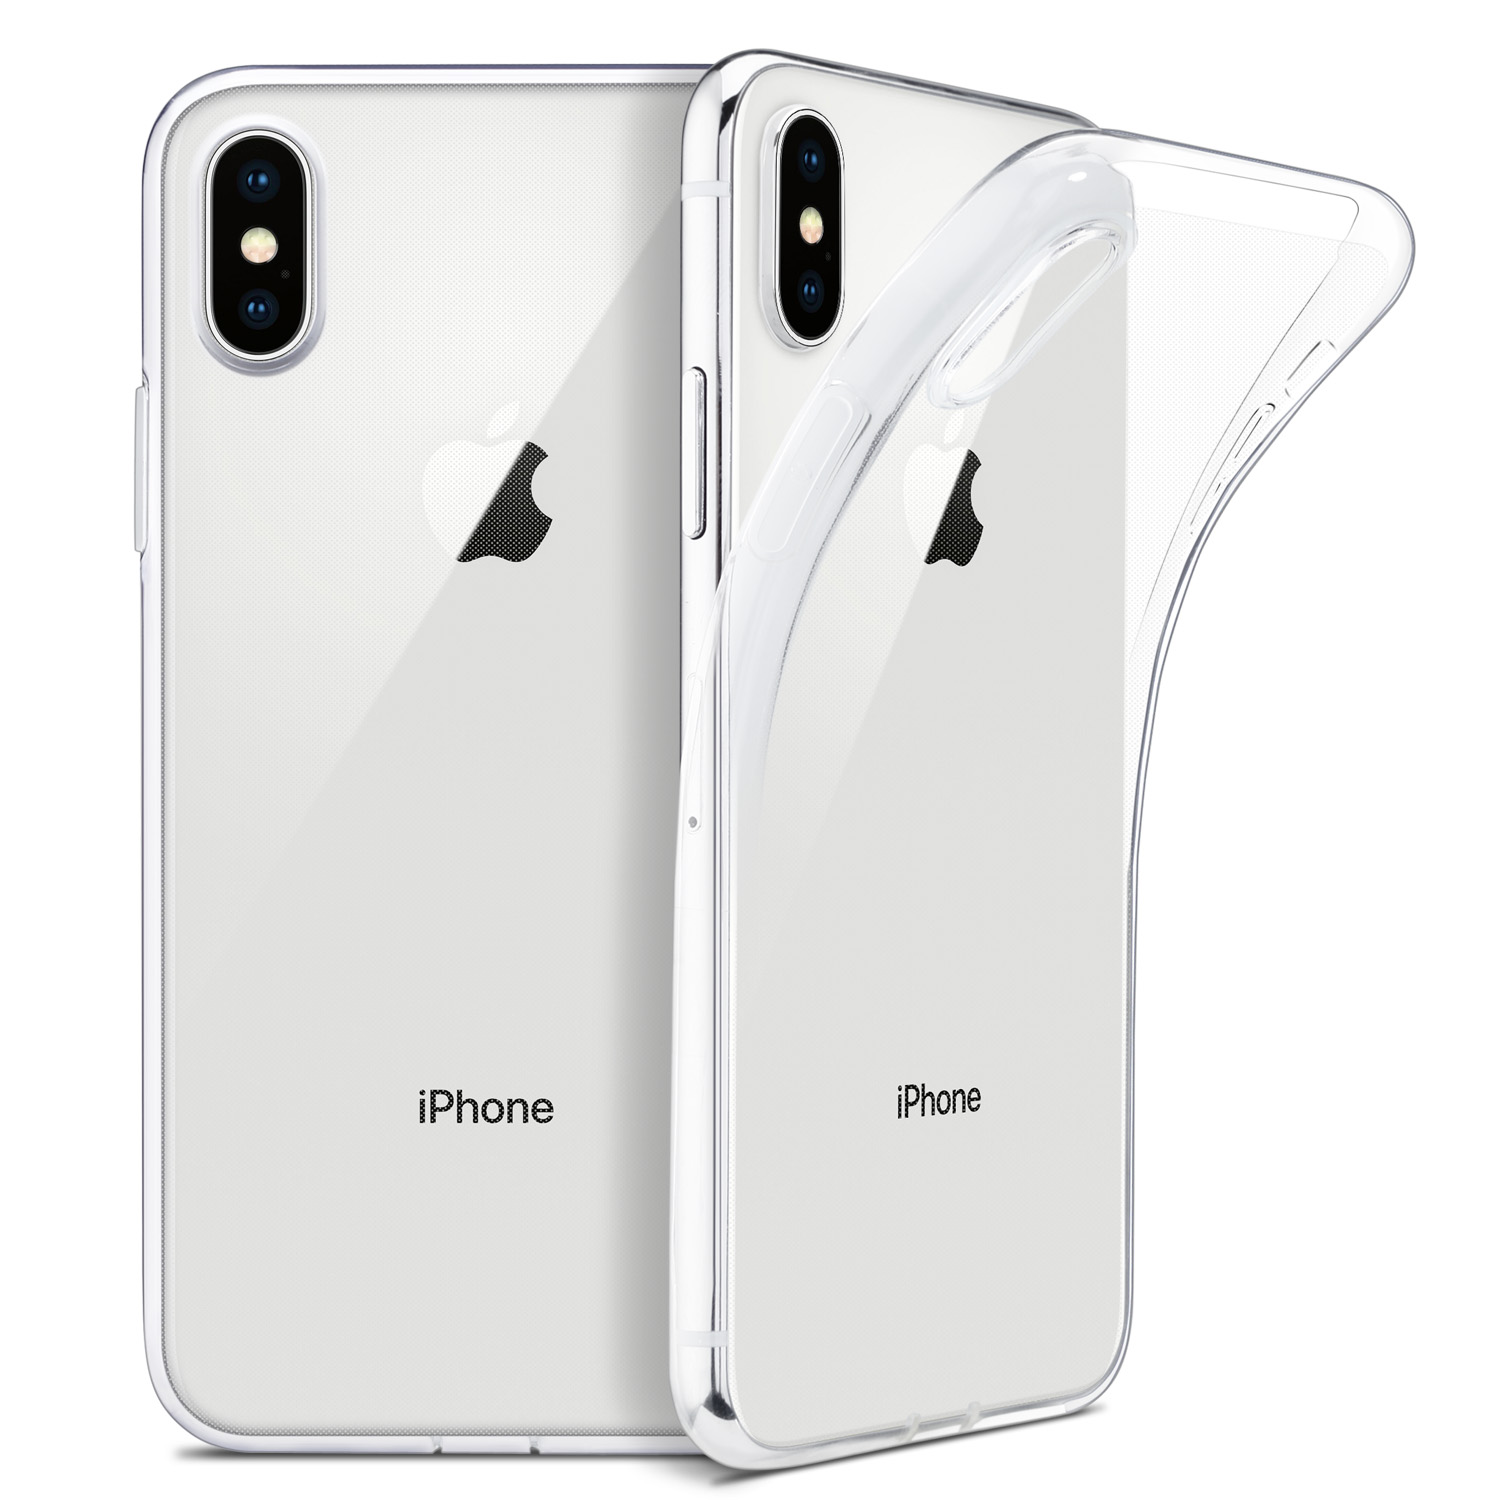 For iphone x case, wefor slim clear soft tpu cover support wireless charging for apple 5.8